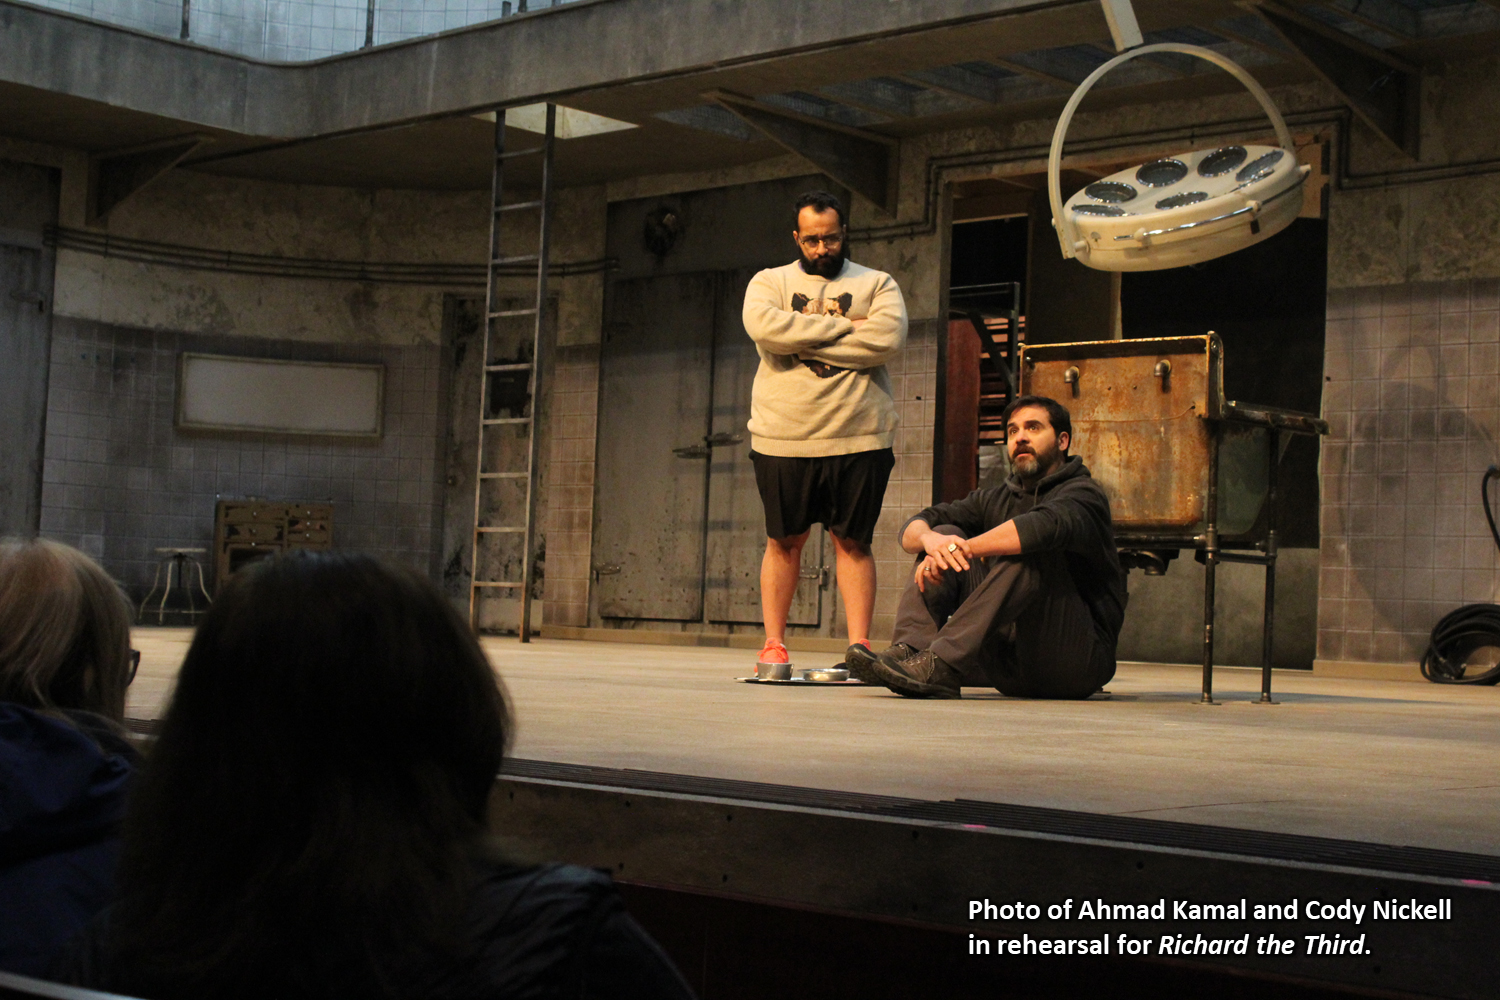 Photo of Ahmad Kamal and Cody Nickell in rehearsal for Richard the Third.